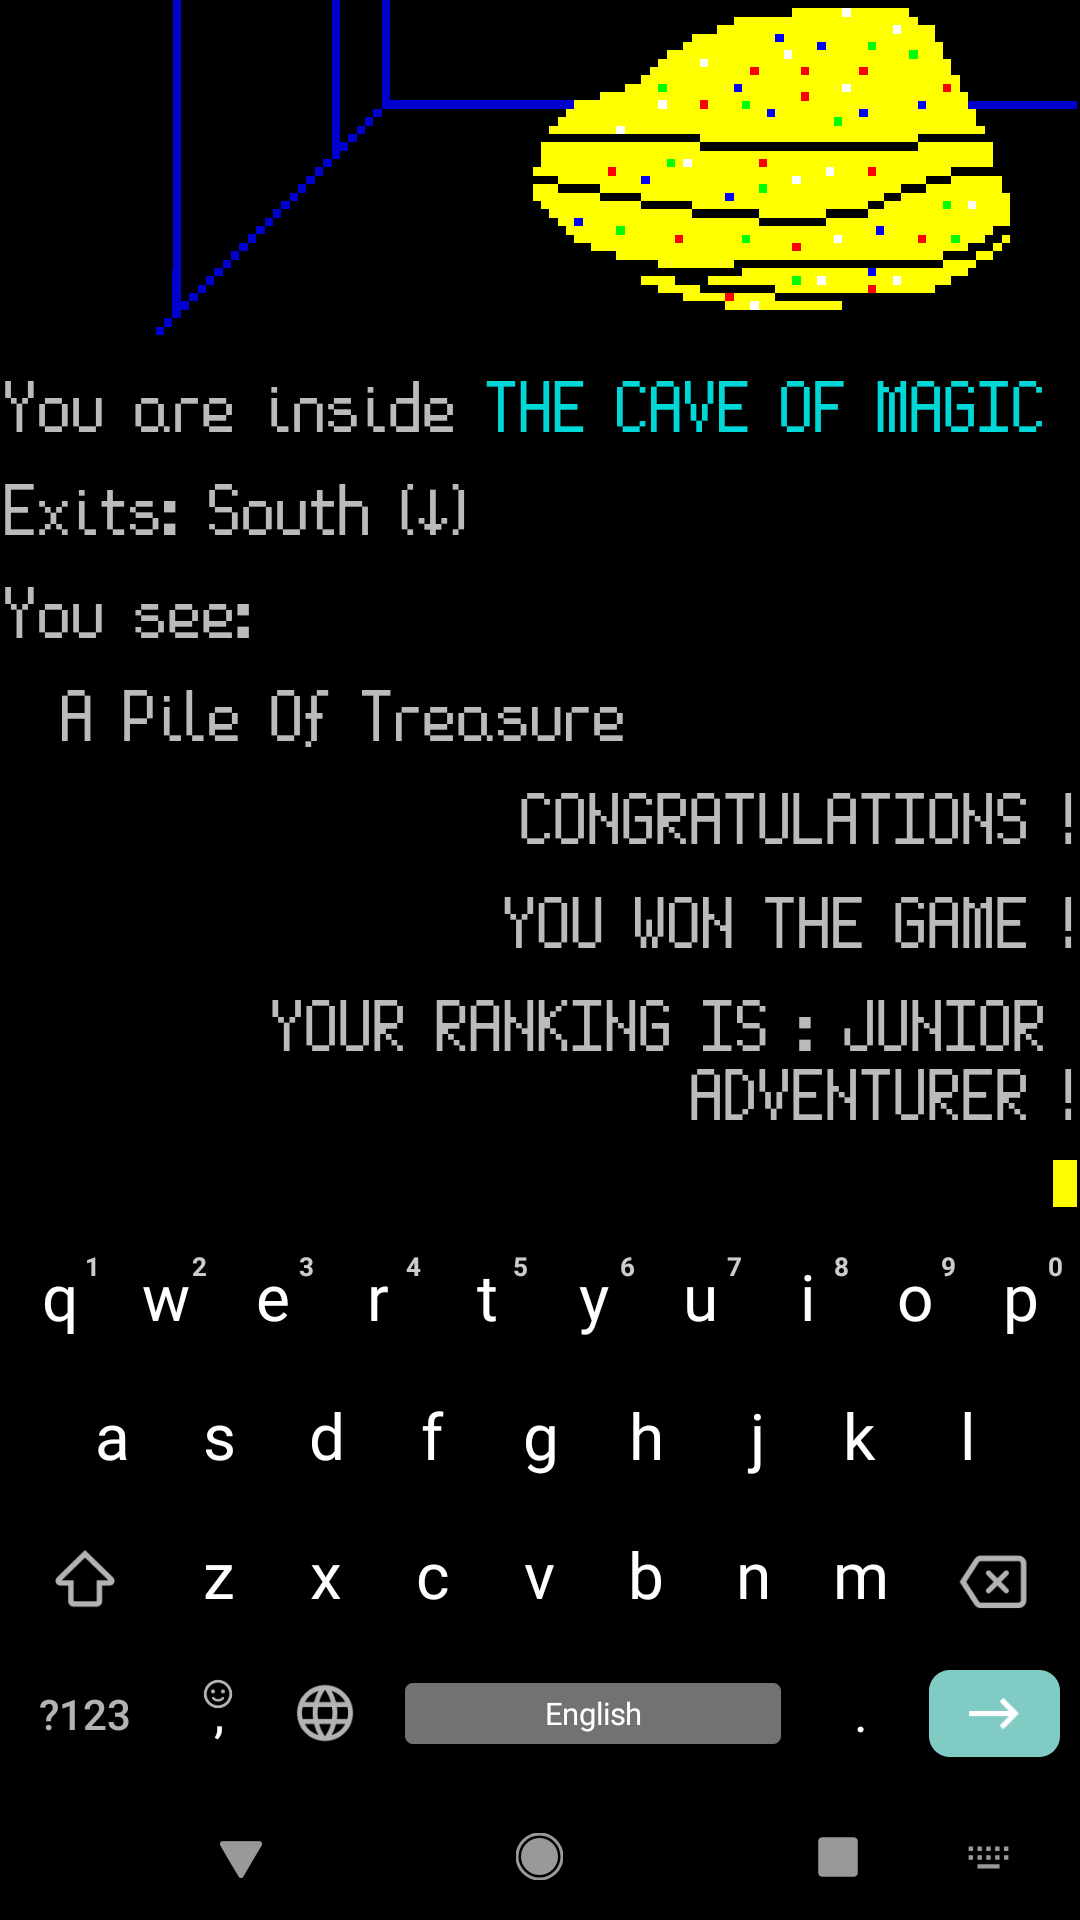 An image of THE CAVE OF MAGIC running on an Android mobile phone